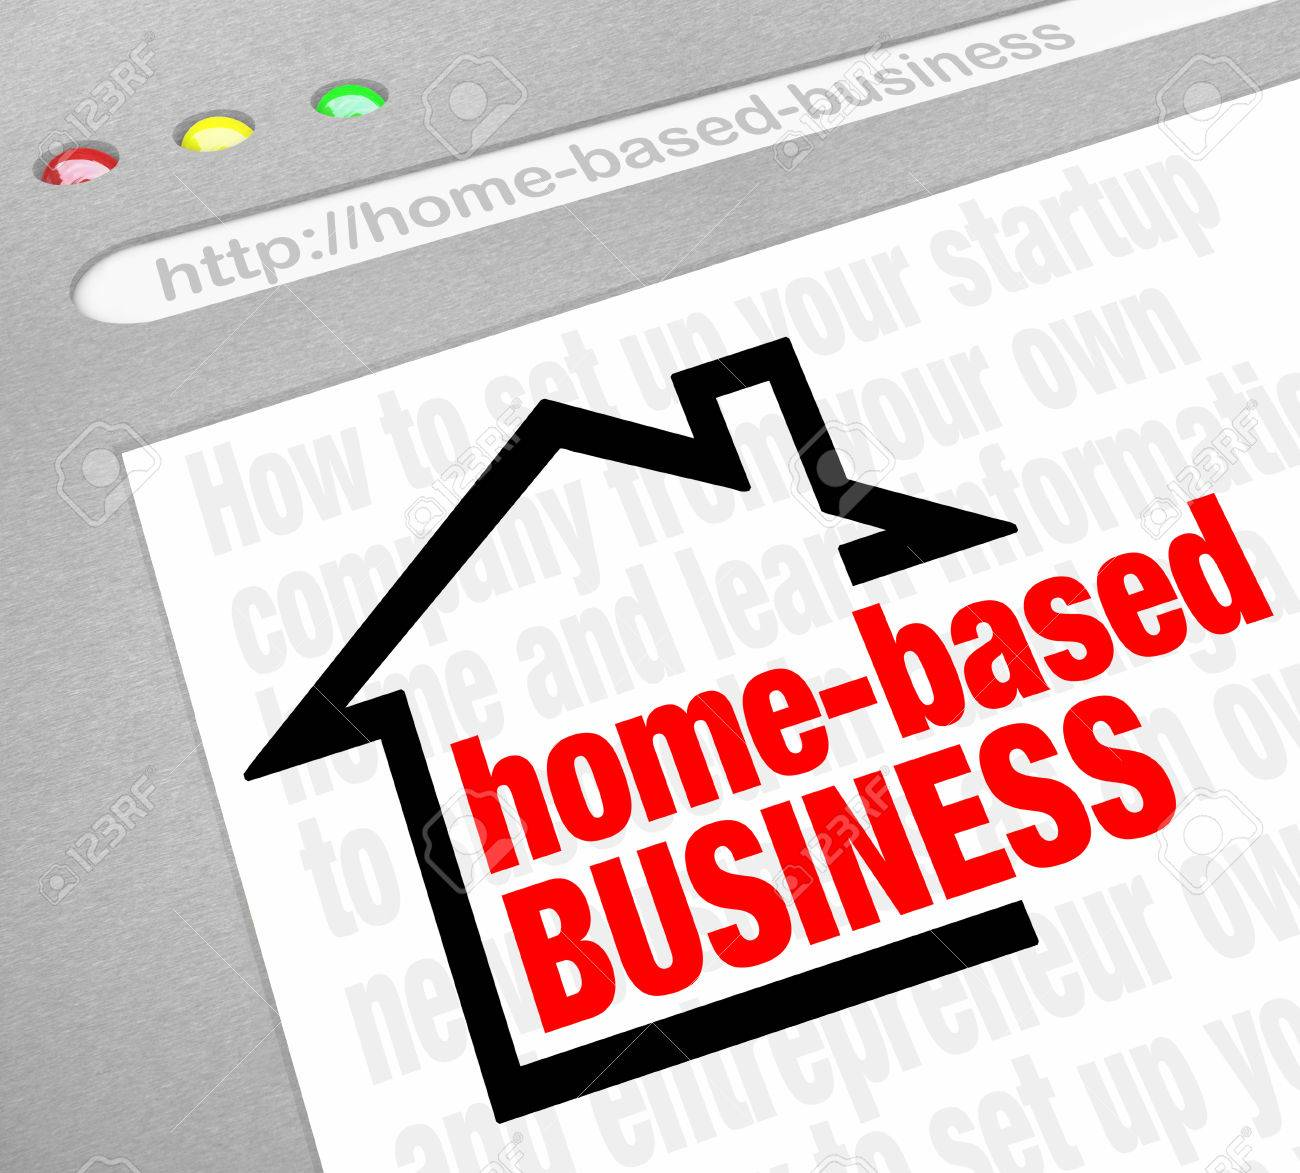 Home Based Business Website Resource Offering Advice, Tips, Help ...